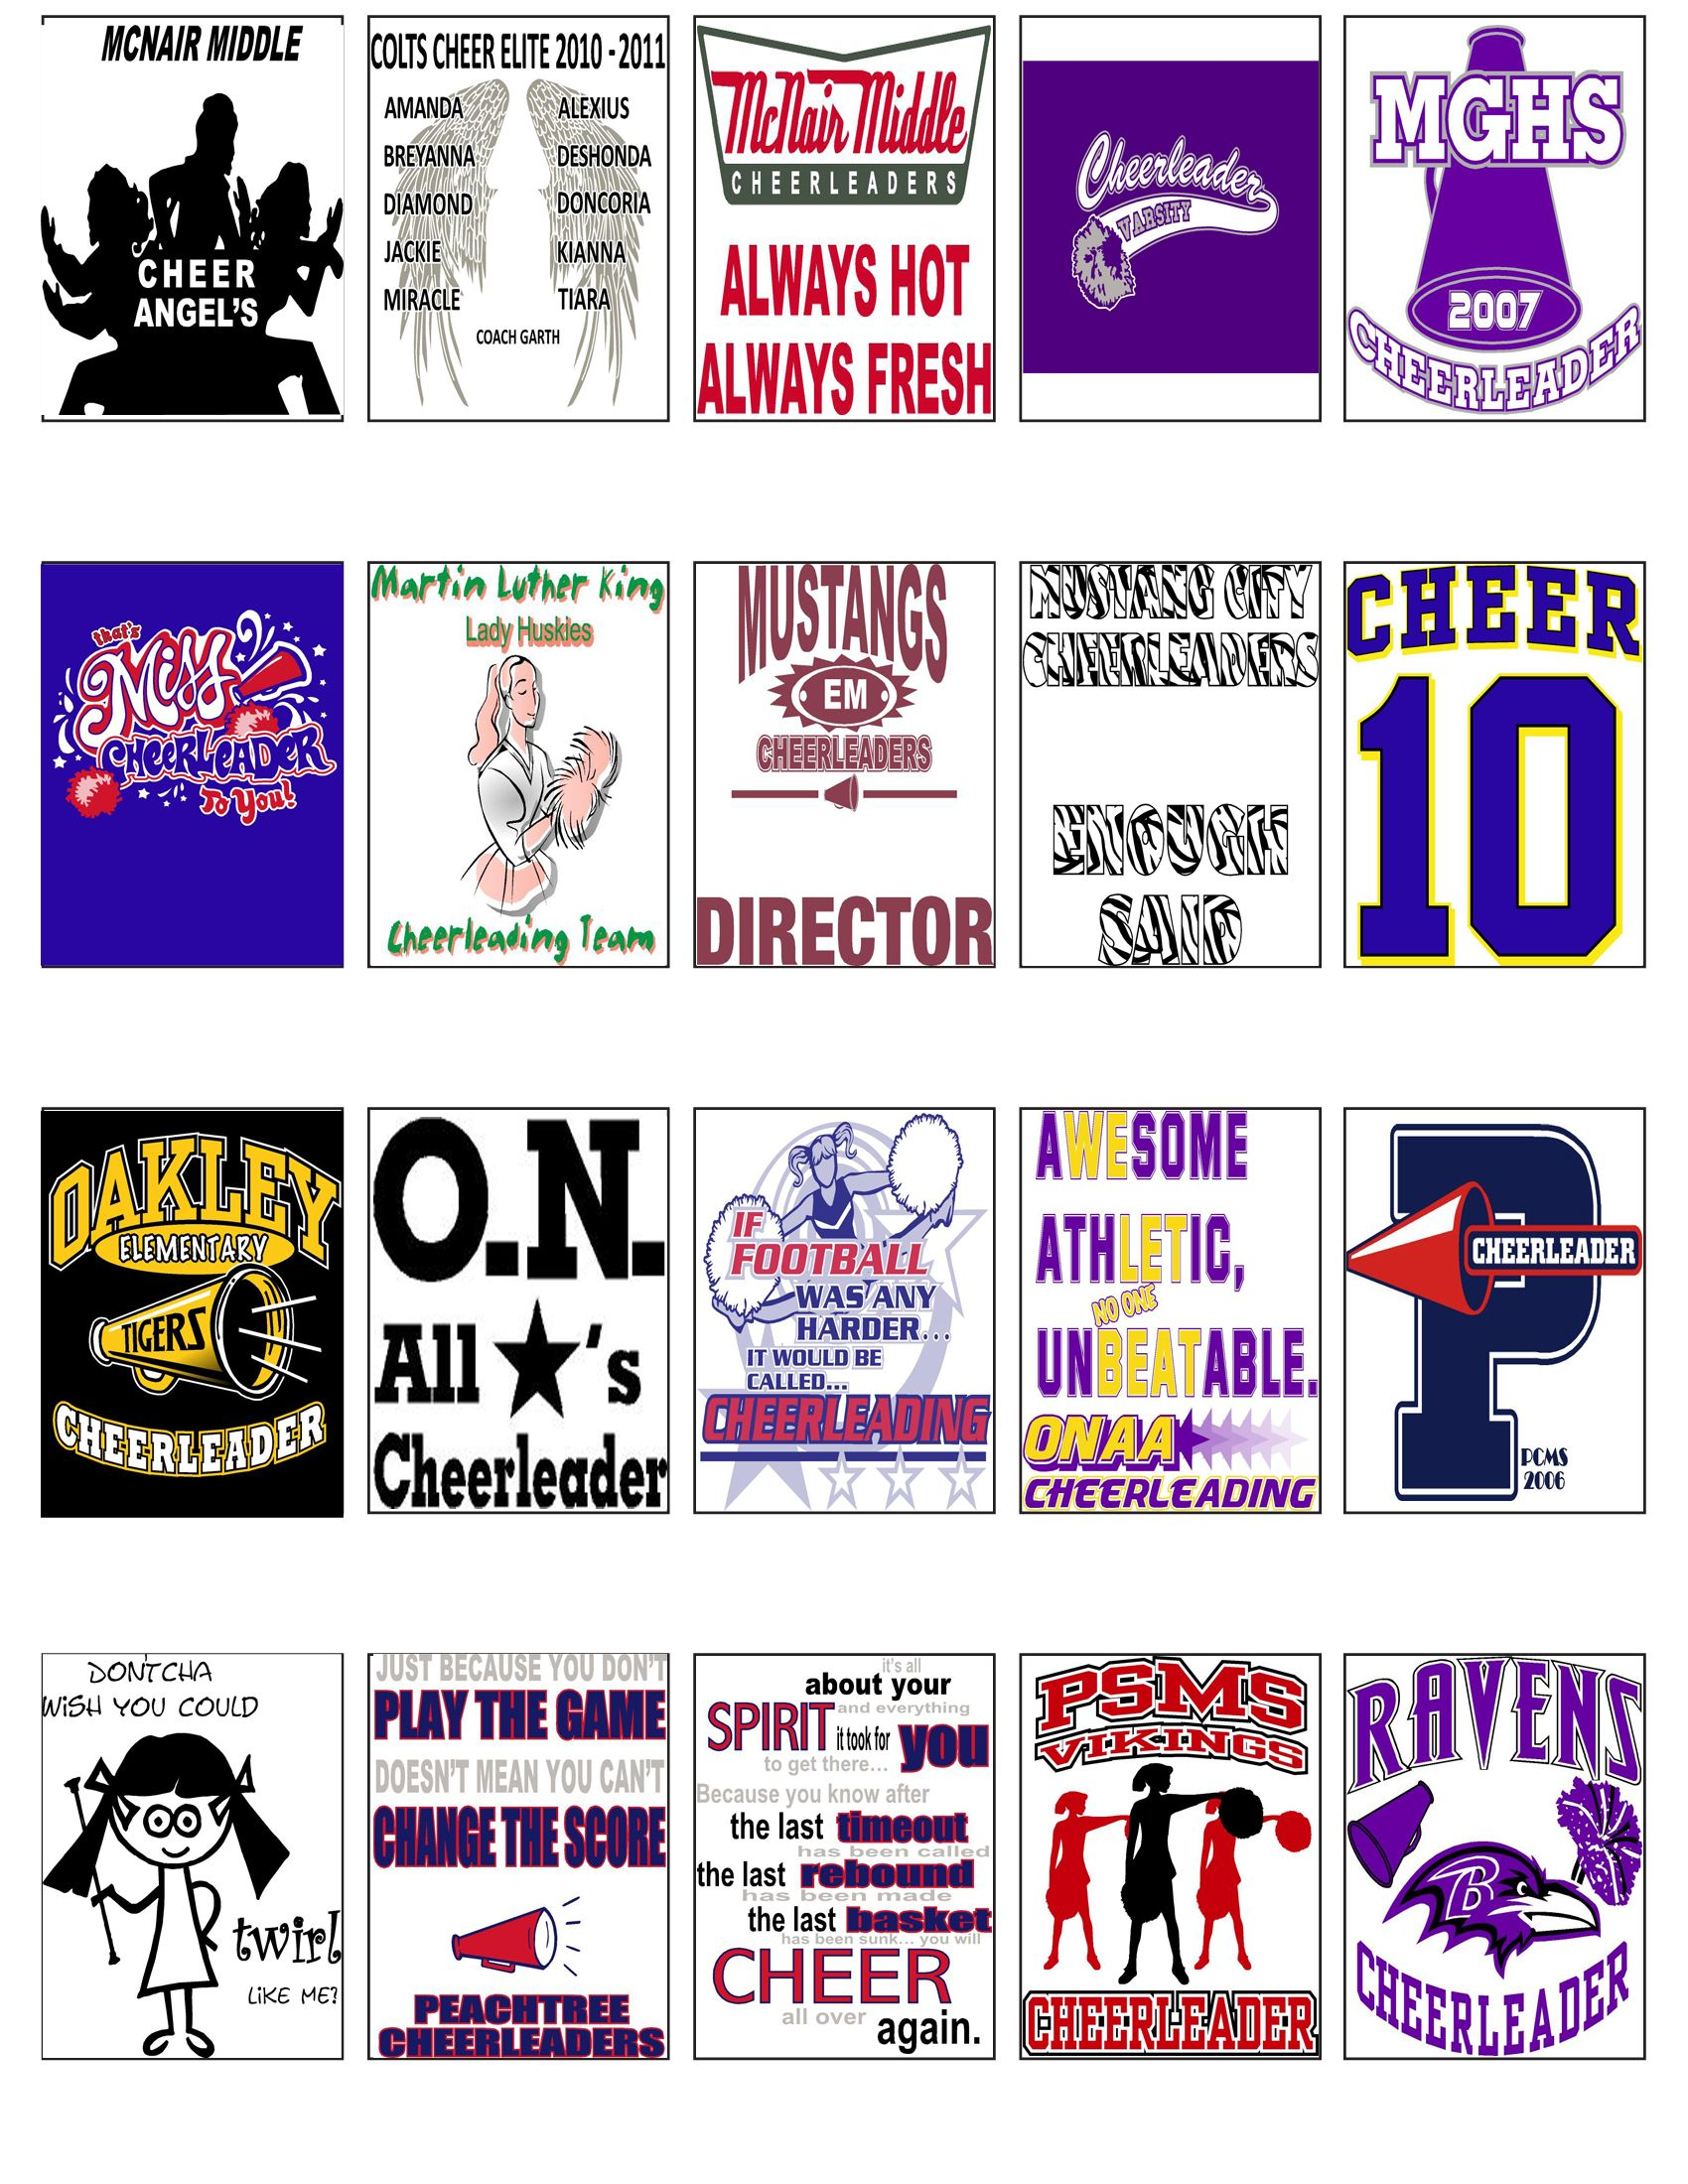 Cheer Shirt Design Ideas football mom t shirt design ideas Cheerleading Team Shirts Design Your Tshirts 20140824105220 53f961744d869jpg 17002200 Cheer Tshirt Ideas Pinterest